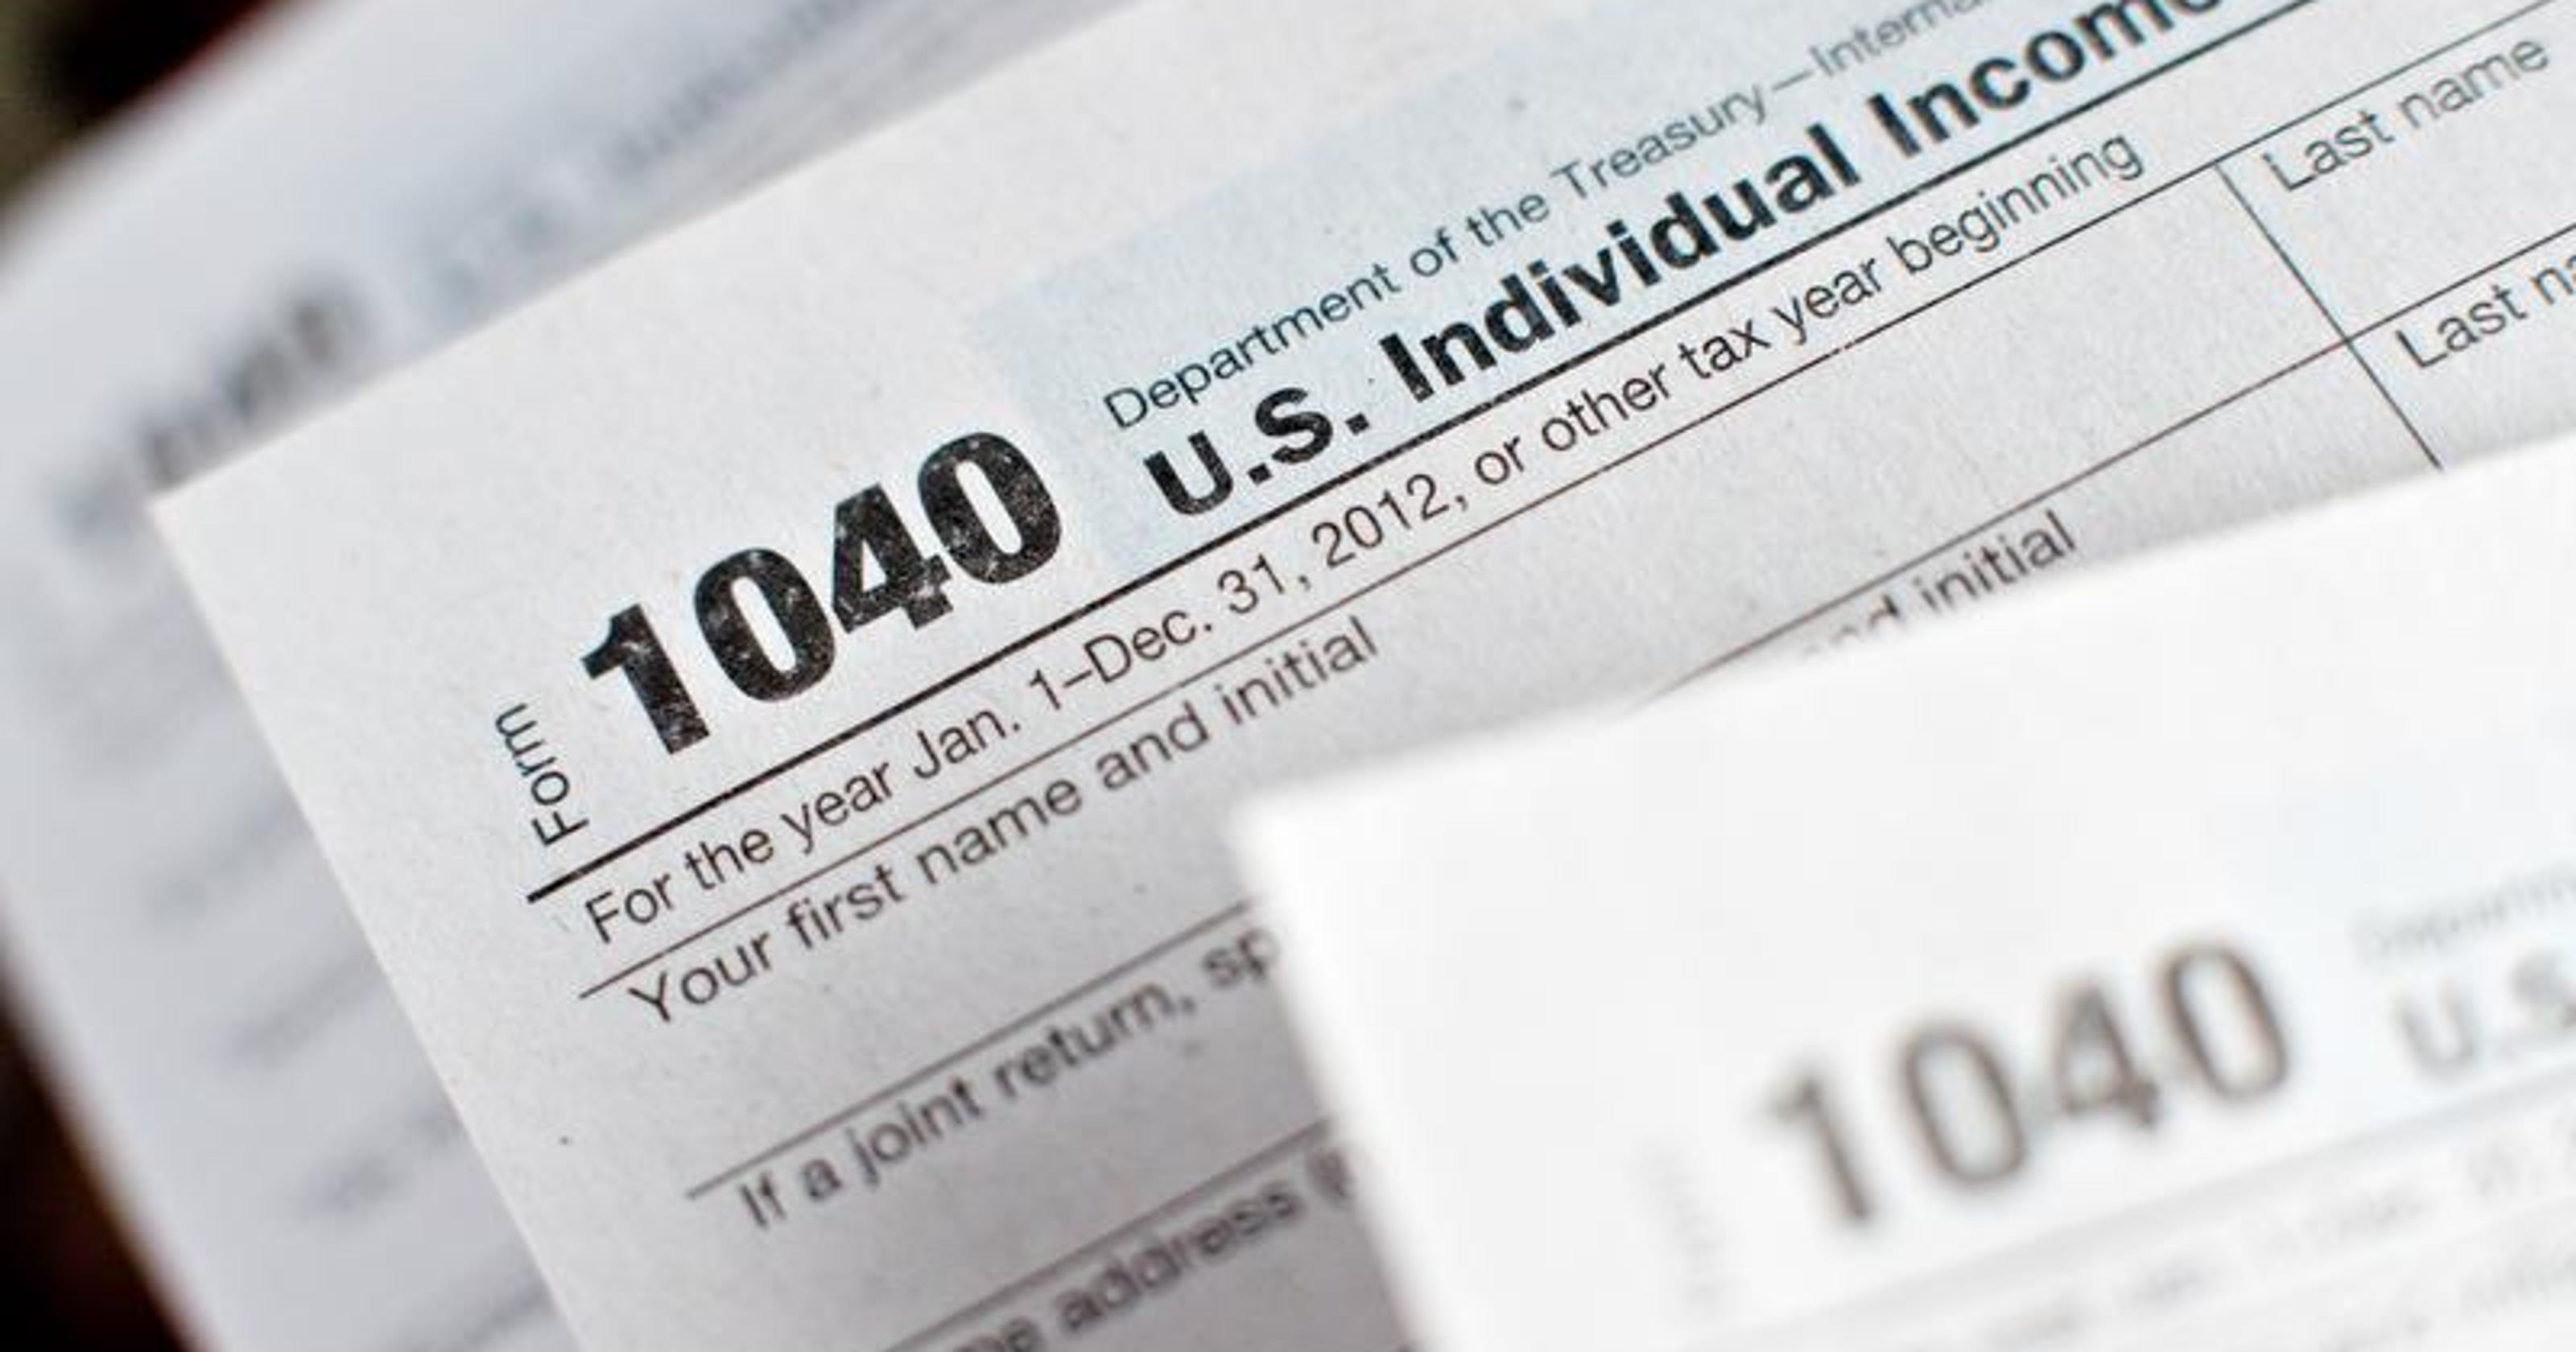 Former Brick tax prep business owners indicted on tax fraud